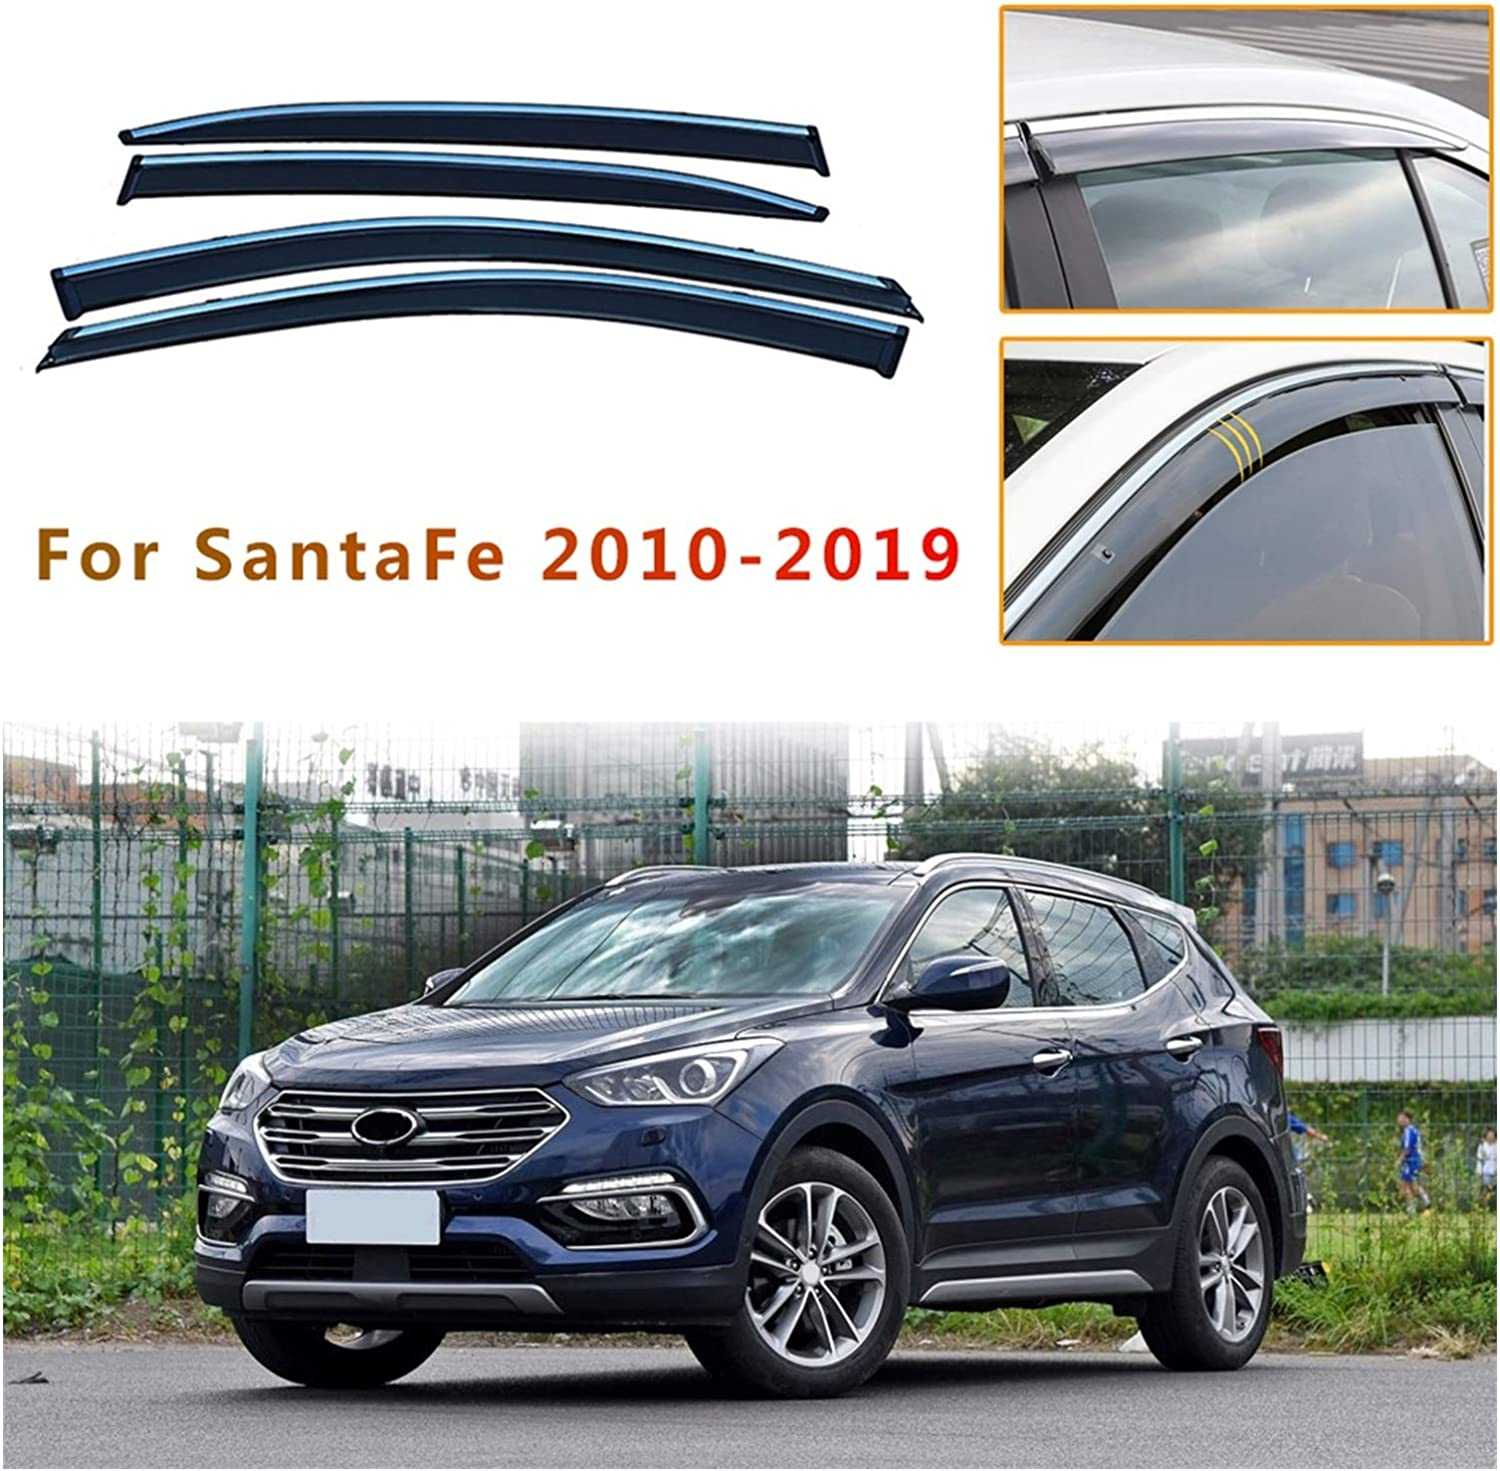 MYDH Window Visor Deflectors All stores are sold Hyundai Santaf for Car Outstanding